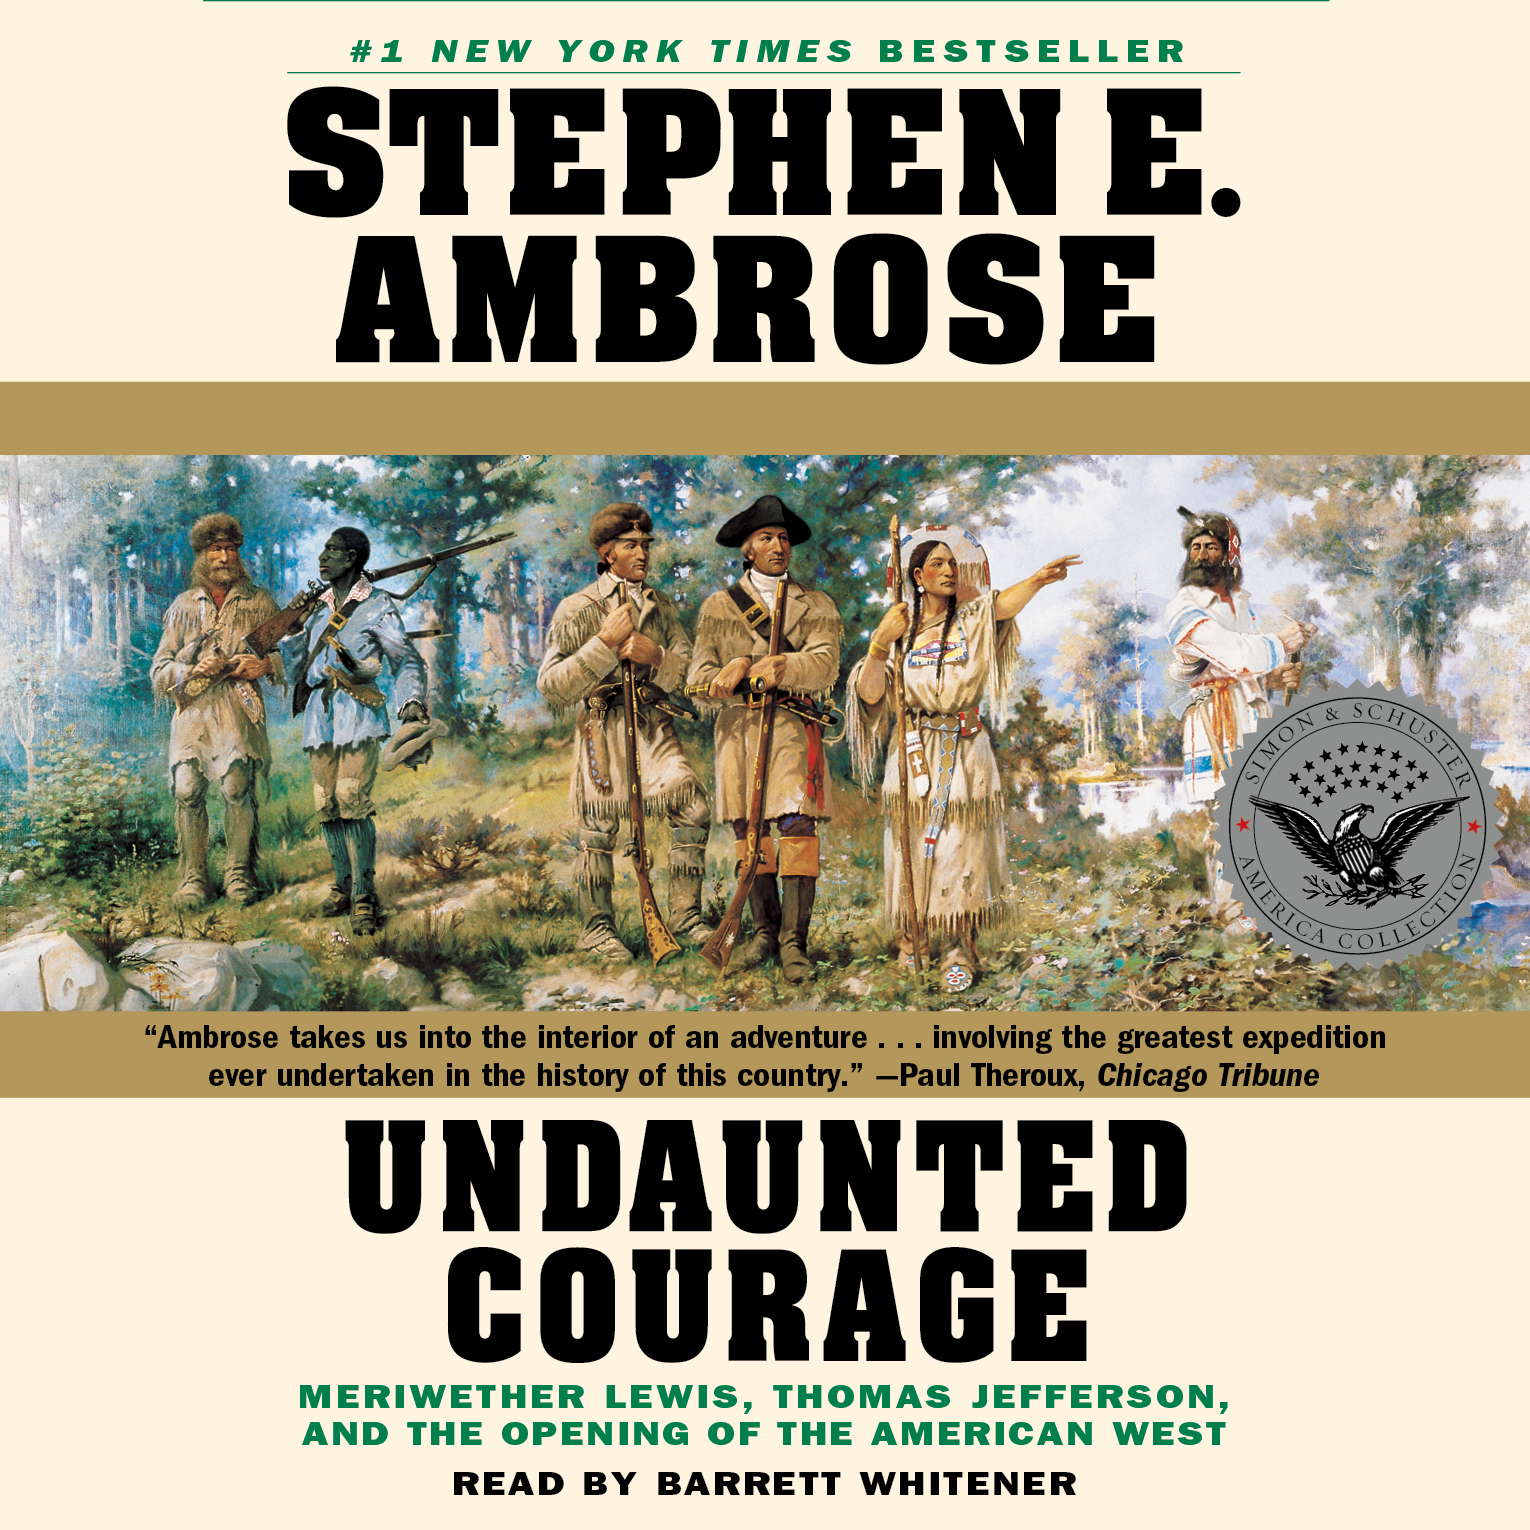 Book Cover Image (jpg): Undaunted Courage. Unabridged Audio Download  9780743550956